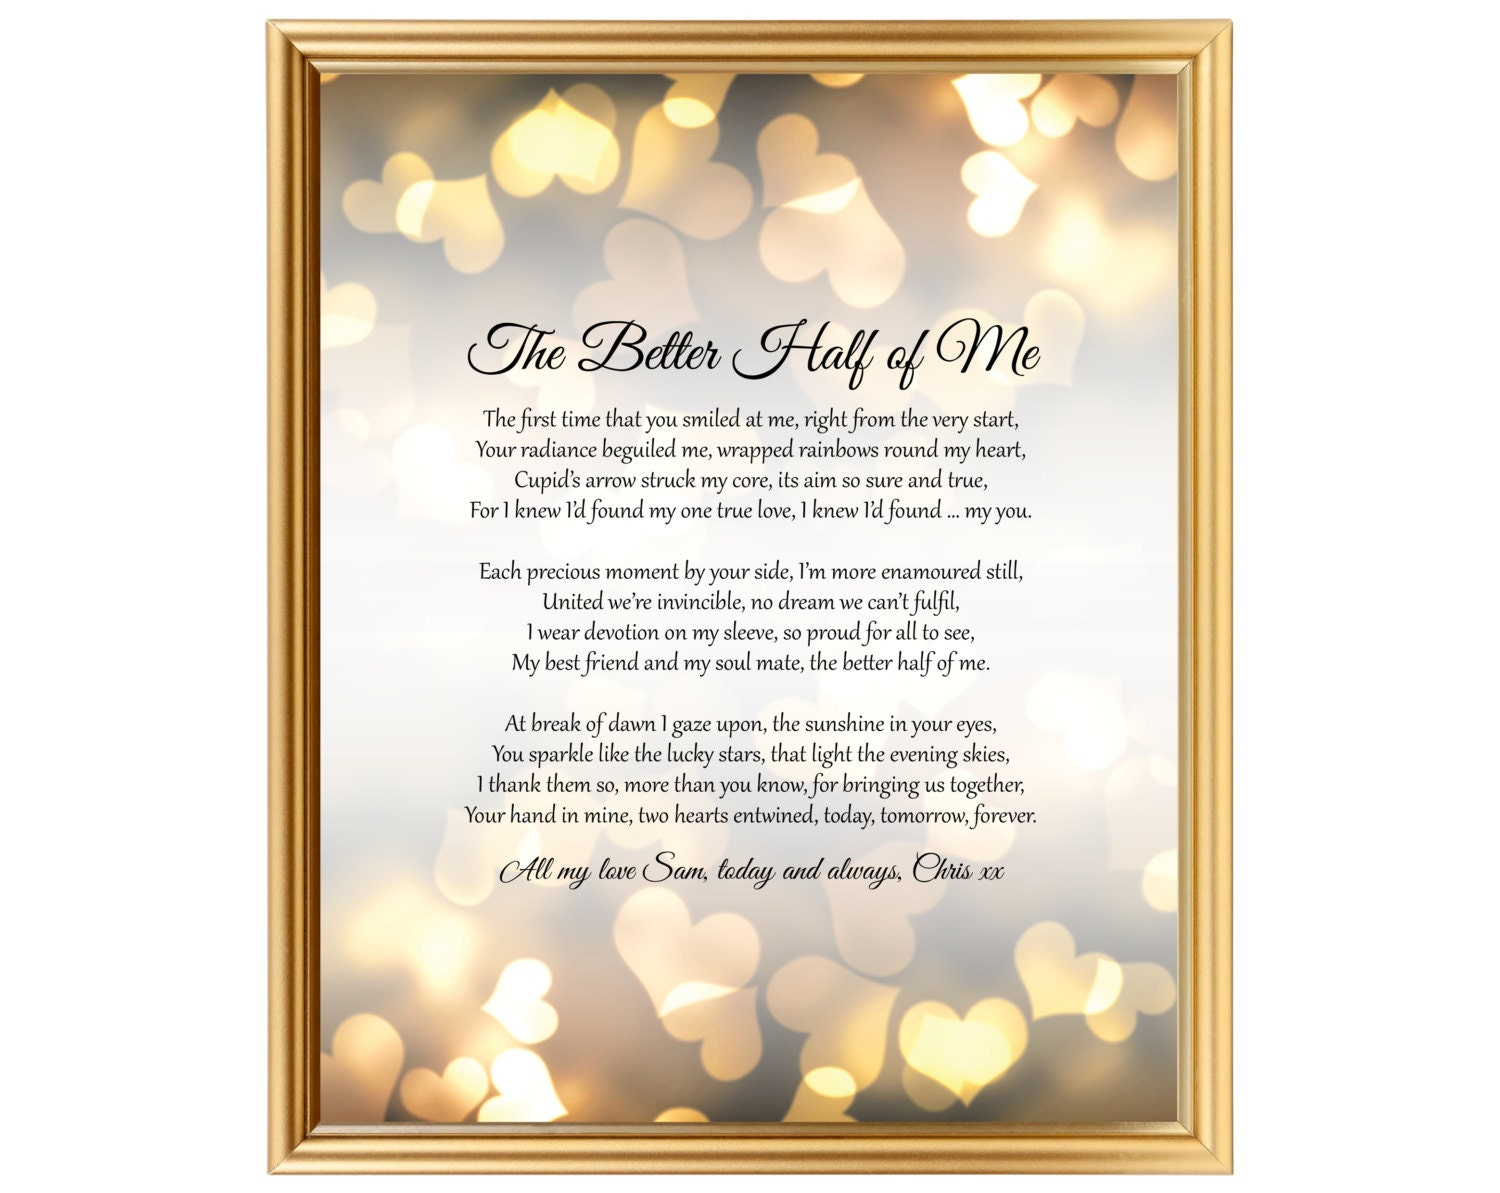 4th Wedding Anniversary Gifts For Husband: Wedding Anniversary Gift Poem For Him Her Husband Wife Partner